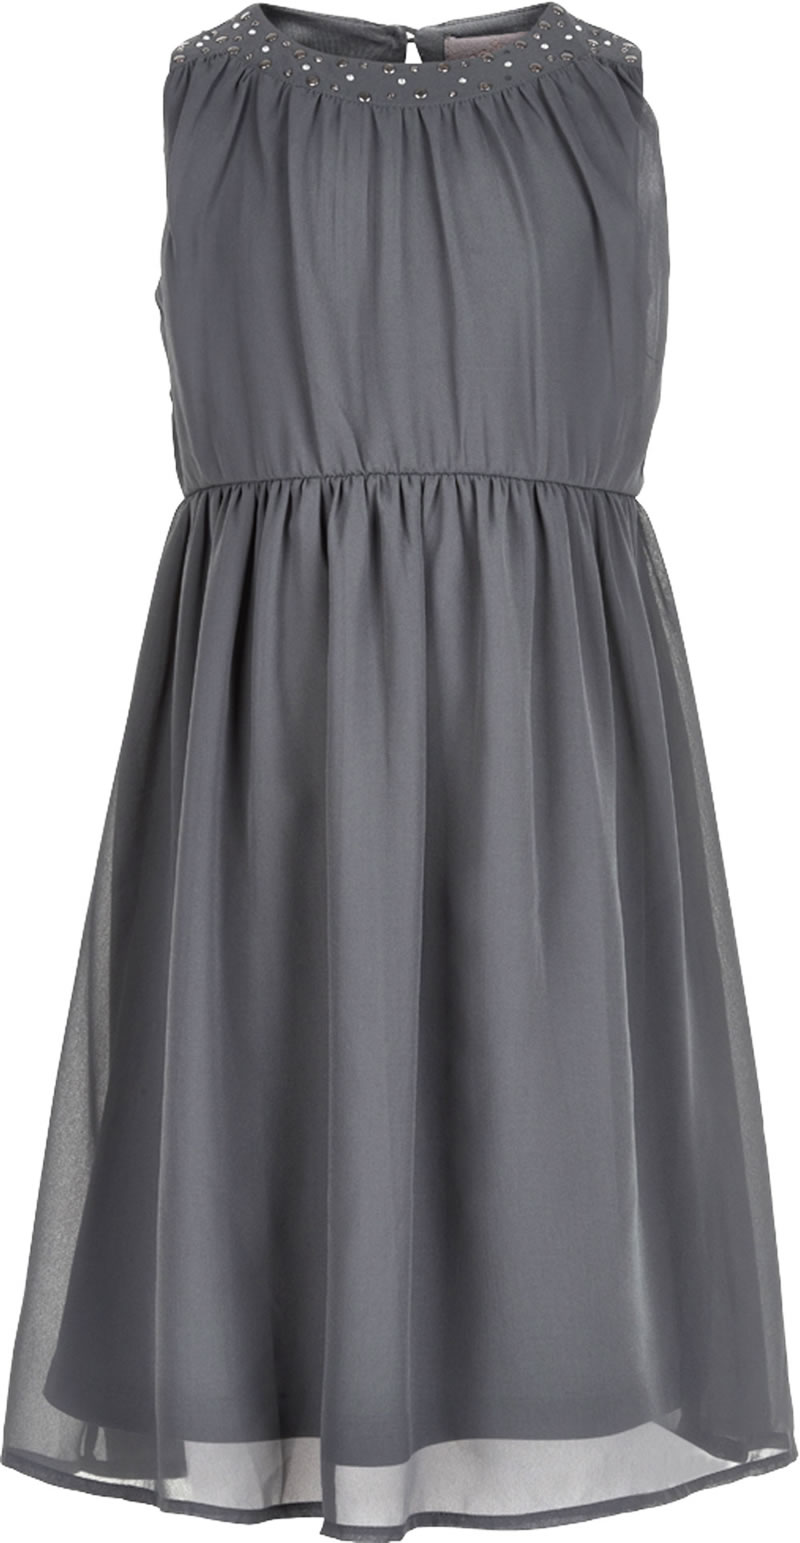 616f6bb10fd5 Beautiful sleeveless dress in delicate grey from CREAMIE. The neck is  covered with pallets and rivets and additional darts form the highlight.